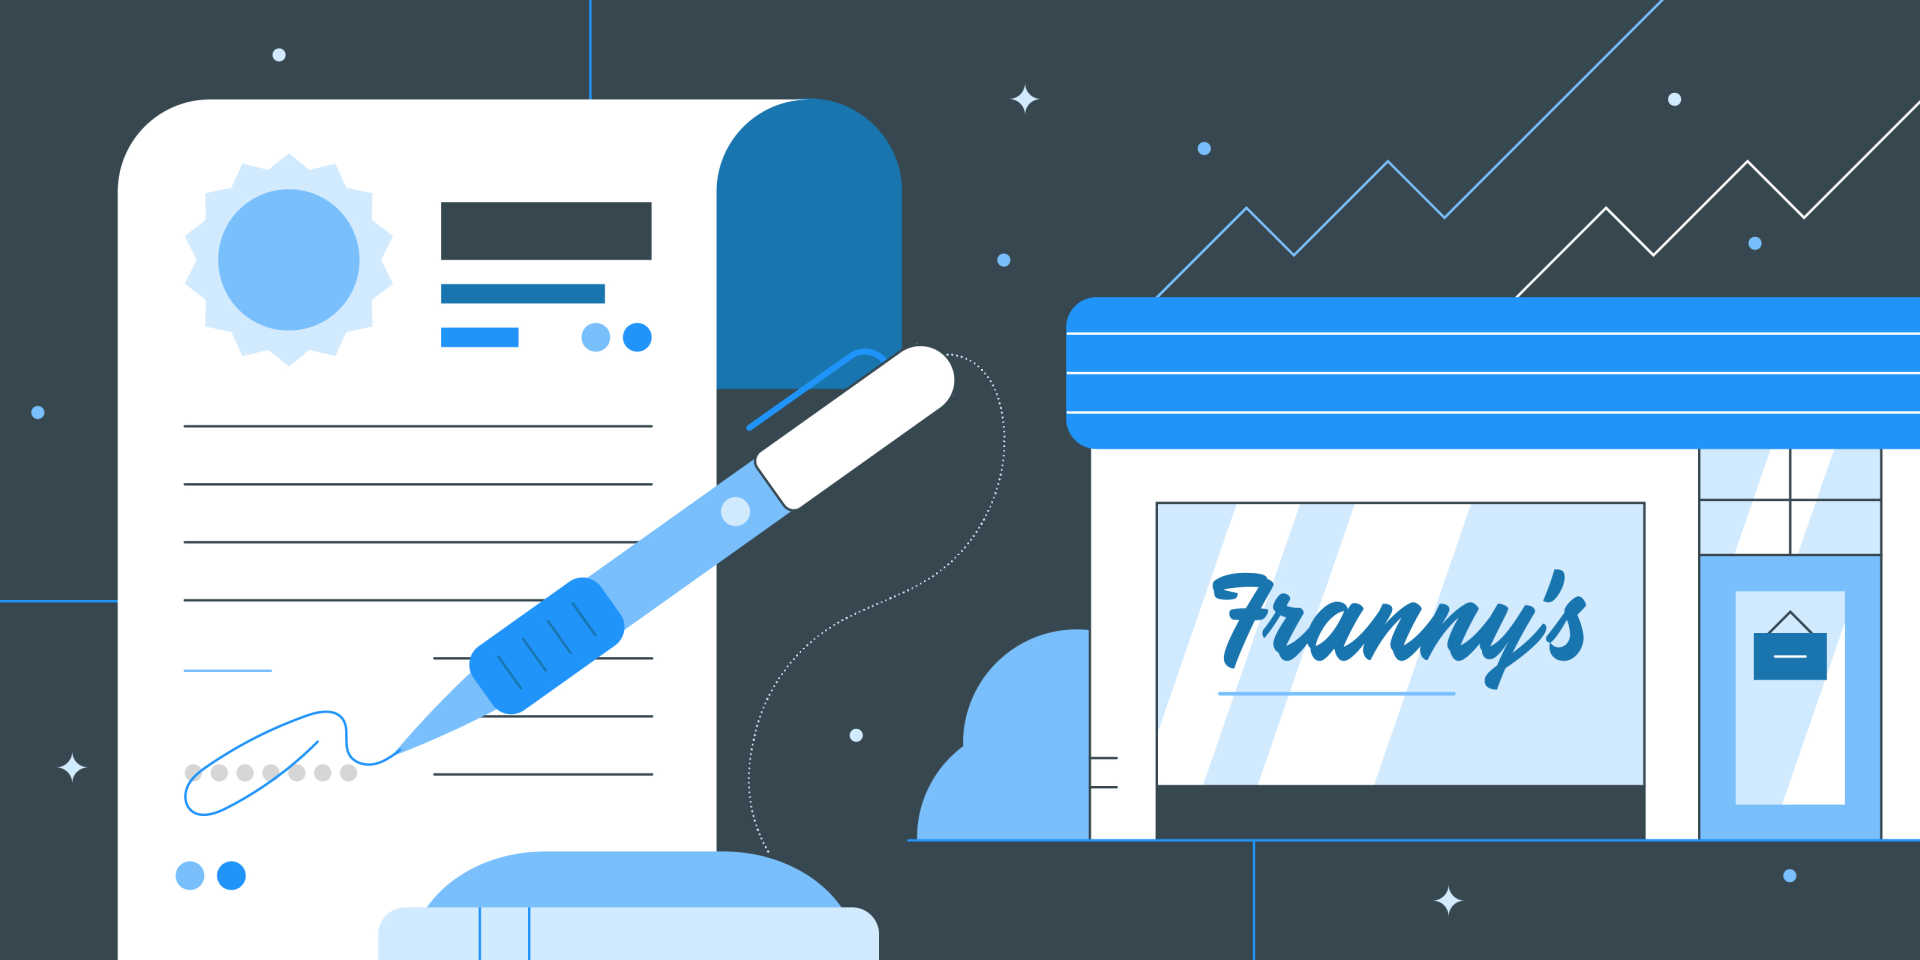 franchising field service businesses header image with contract and storefront illustrations